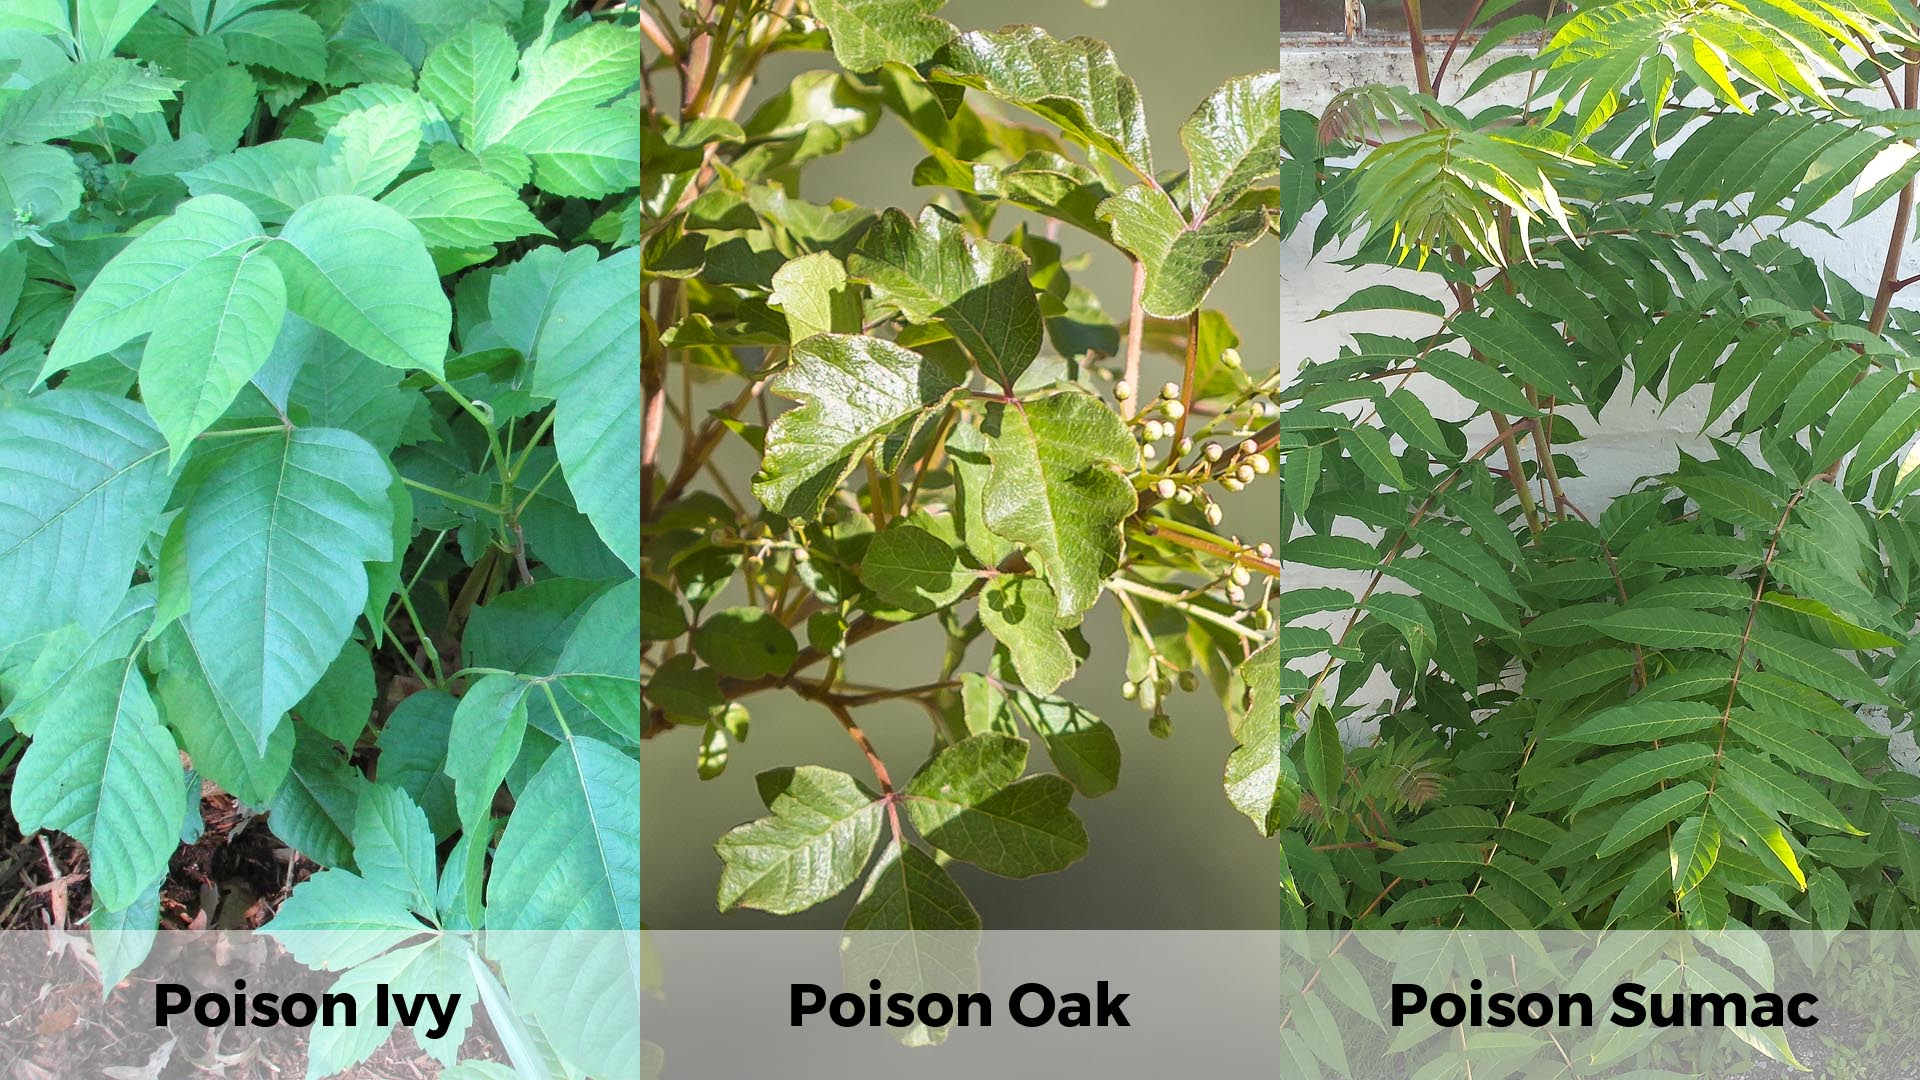 reference of poison ivy, poison oak, and poison sumac